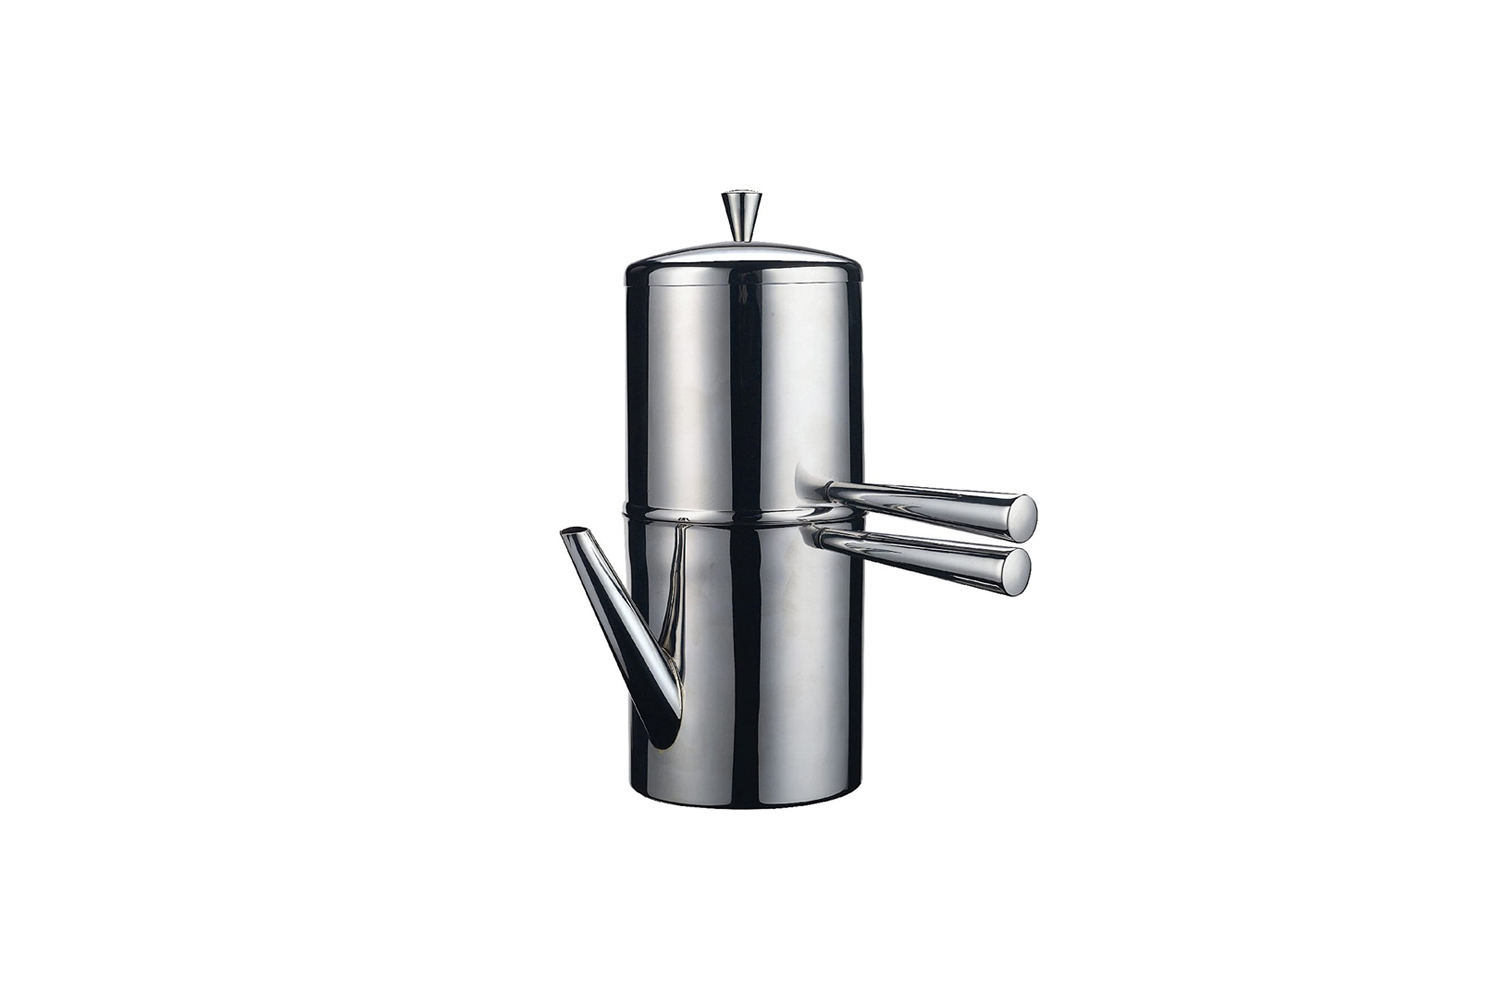 the ilsa stainless steel neapolitan drip coffee maker works by the drip method. 18